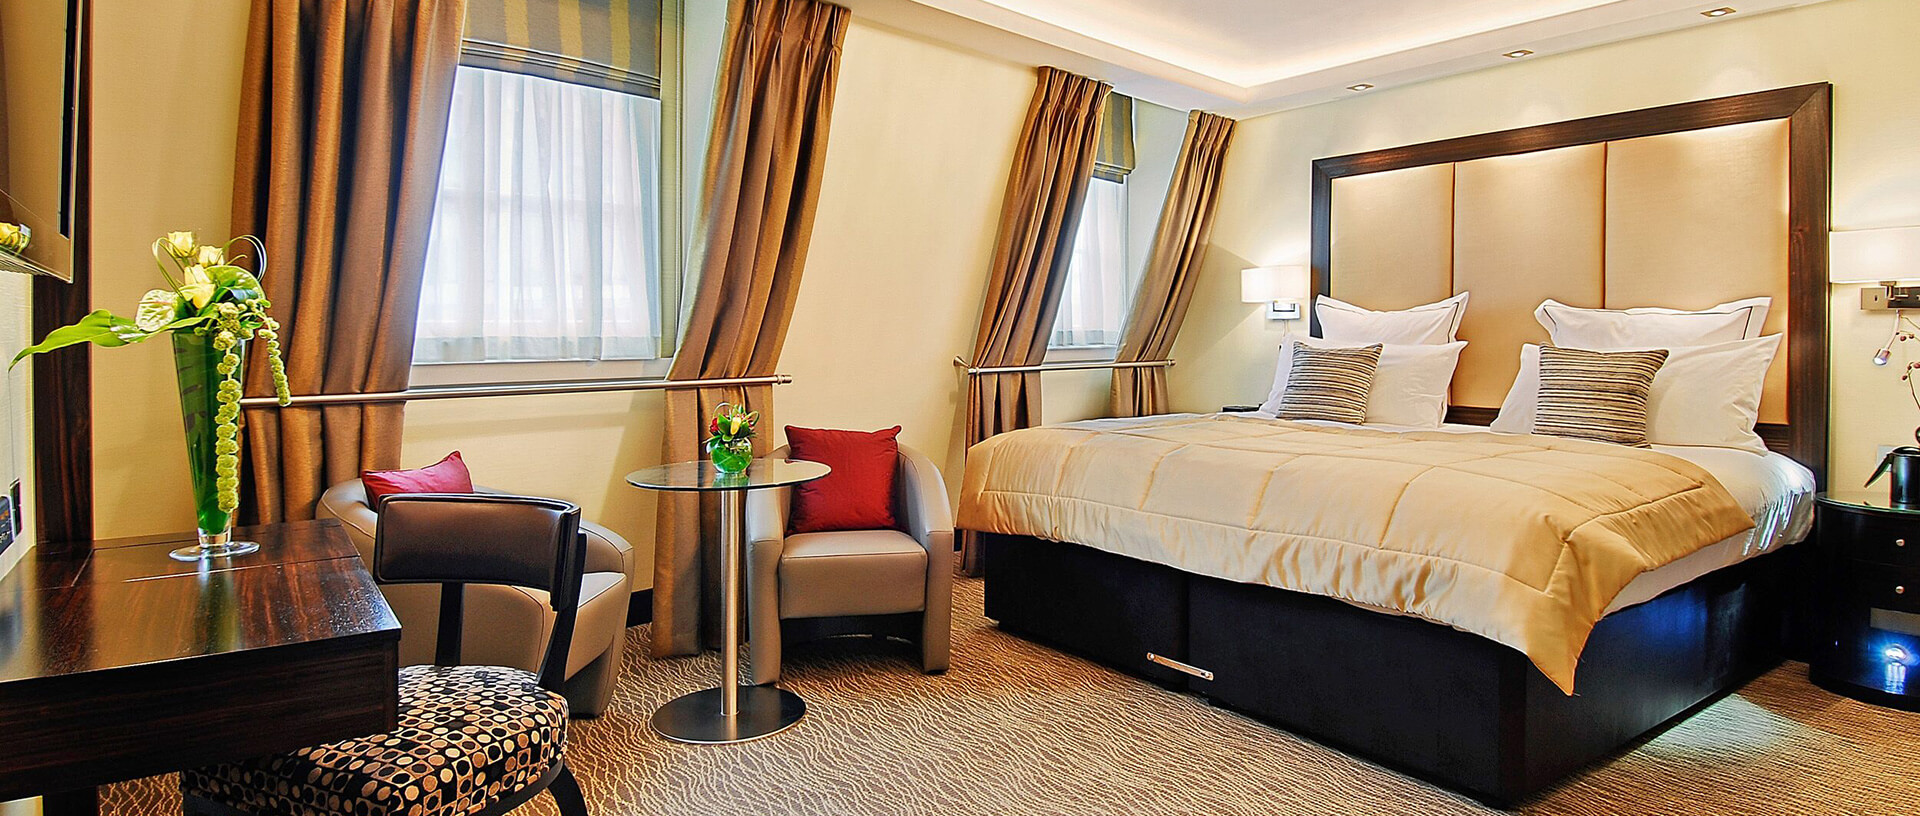 The Family Suites at The Montcalm Marble Arch